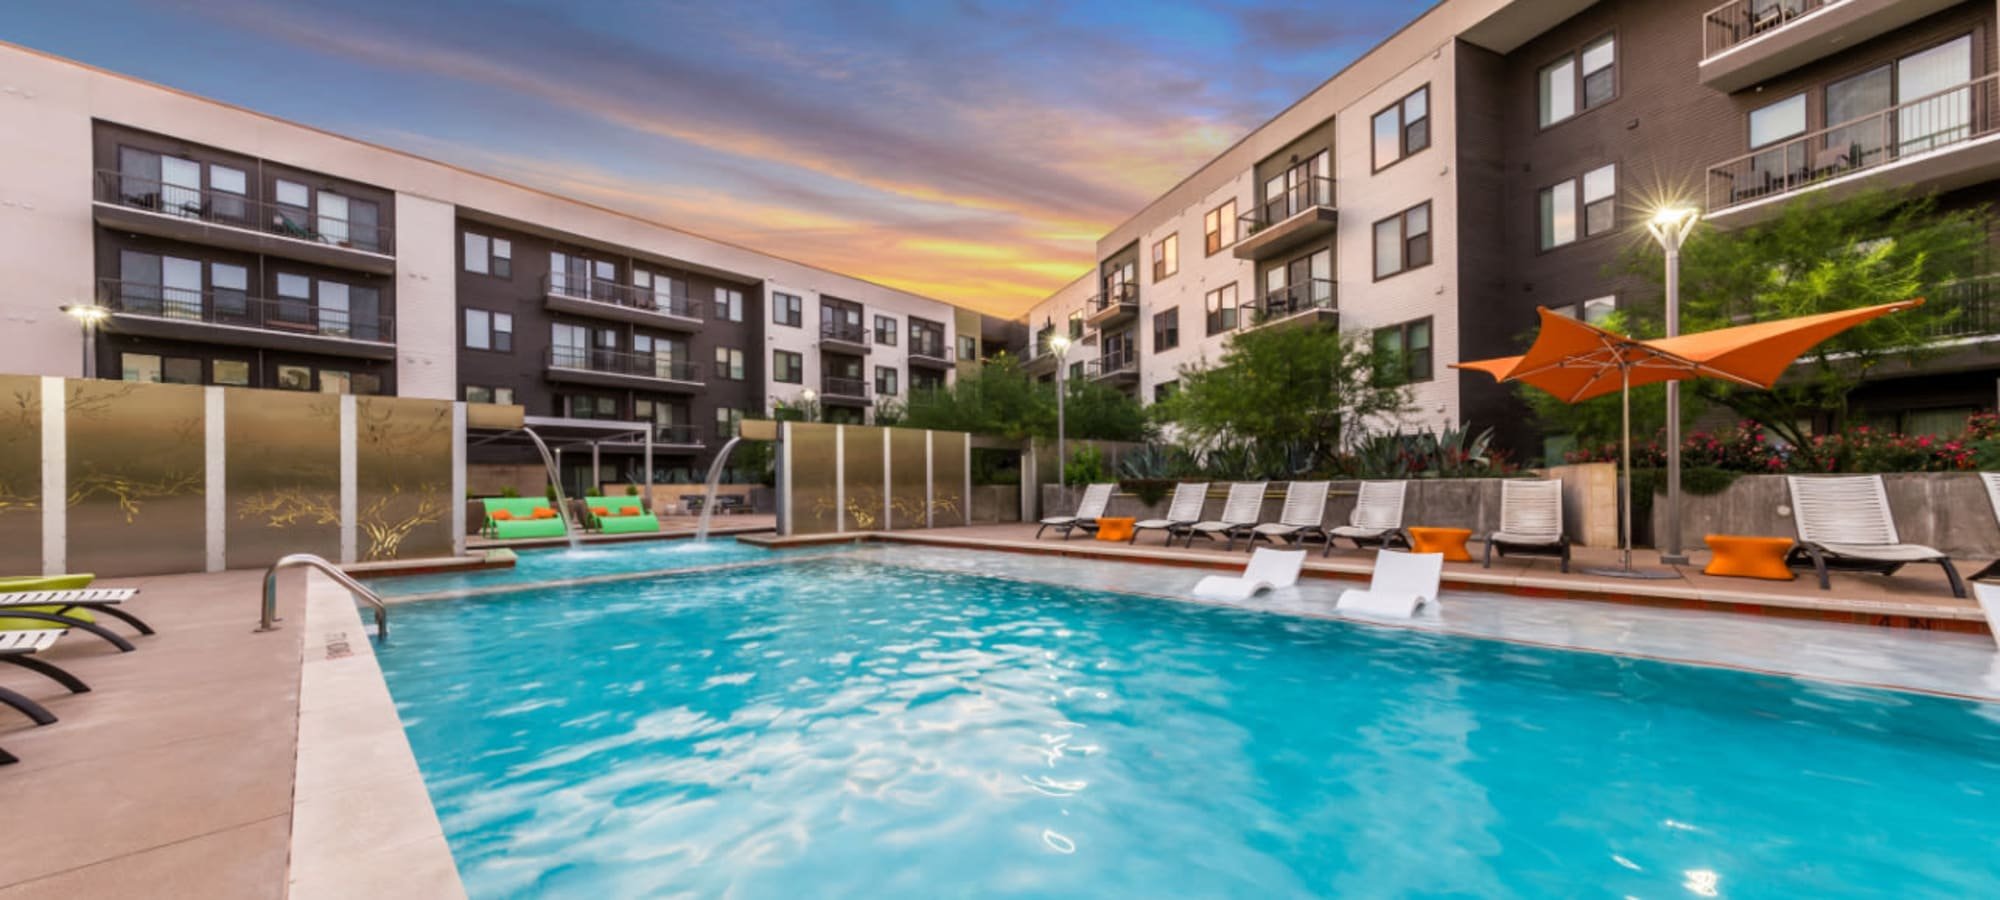 Resident information for Marq Uptown in Austin, Texas